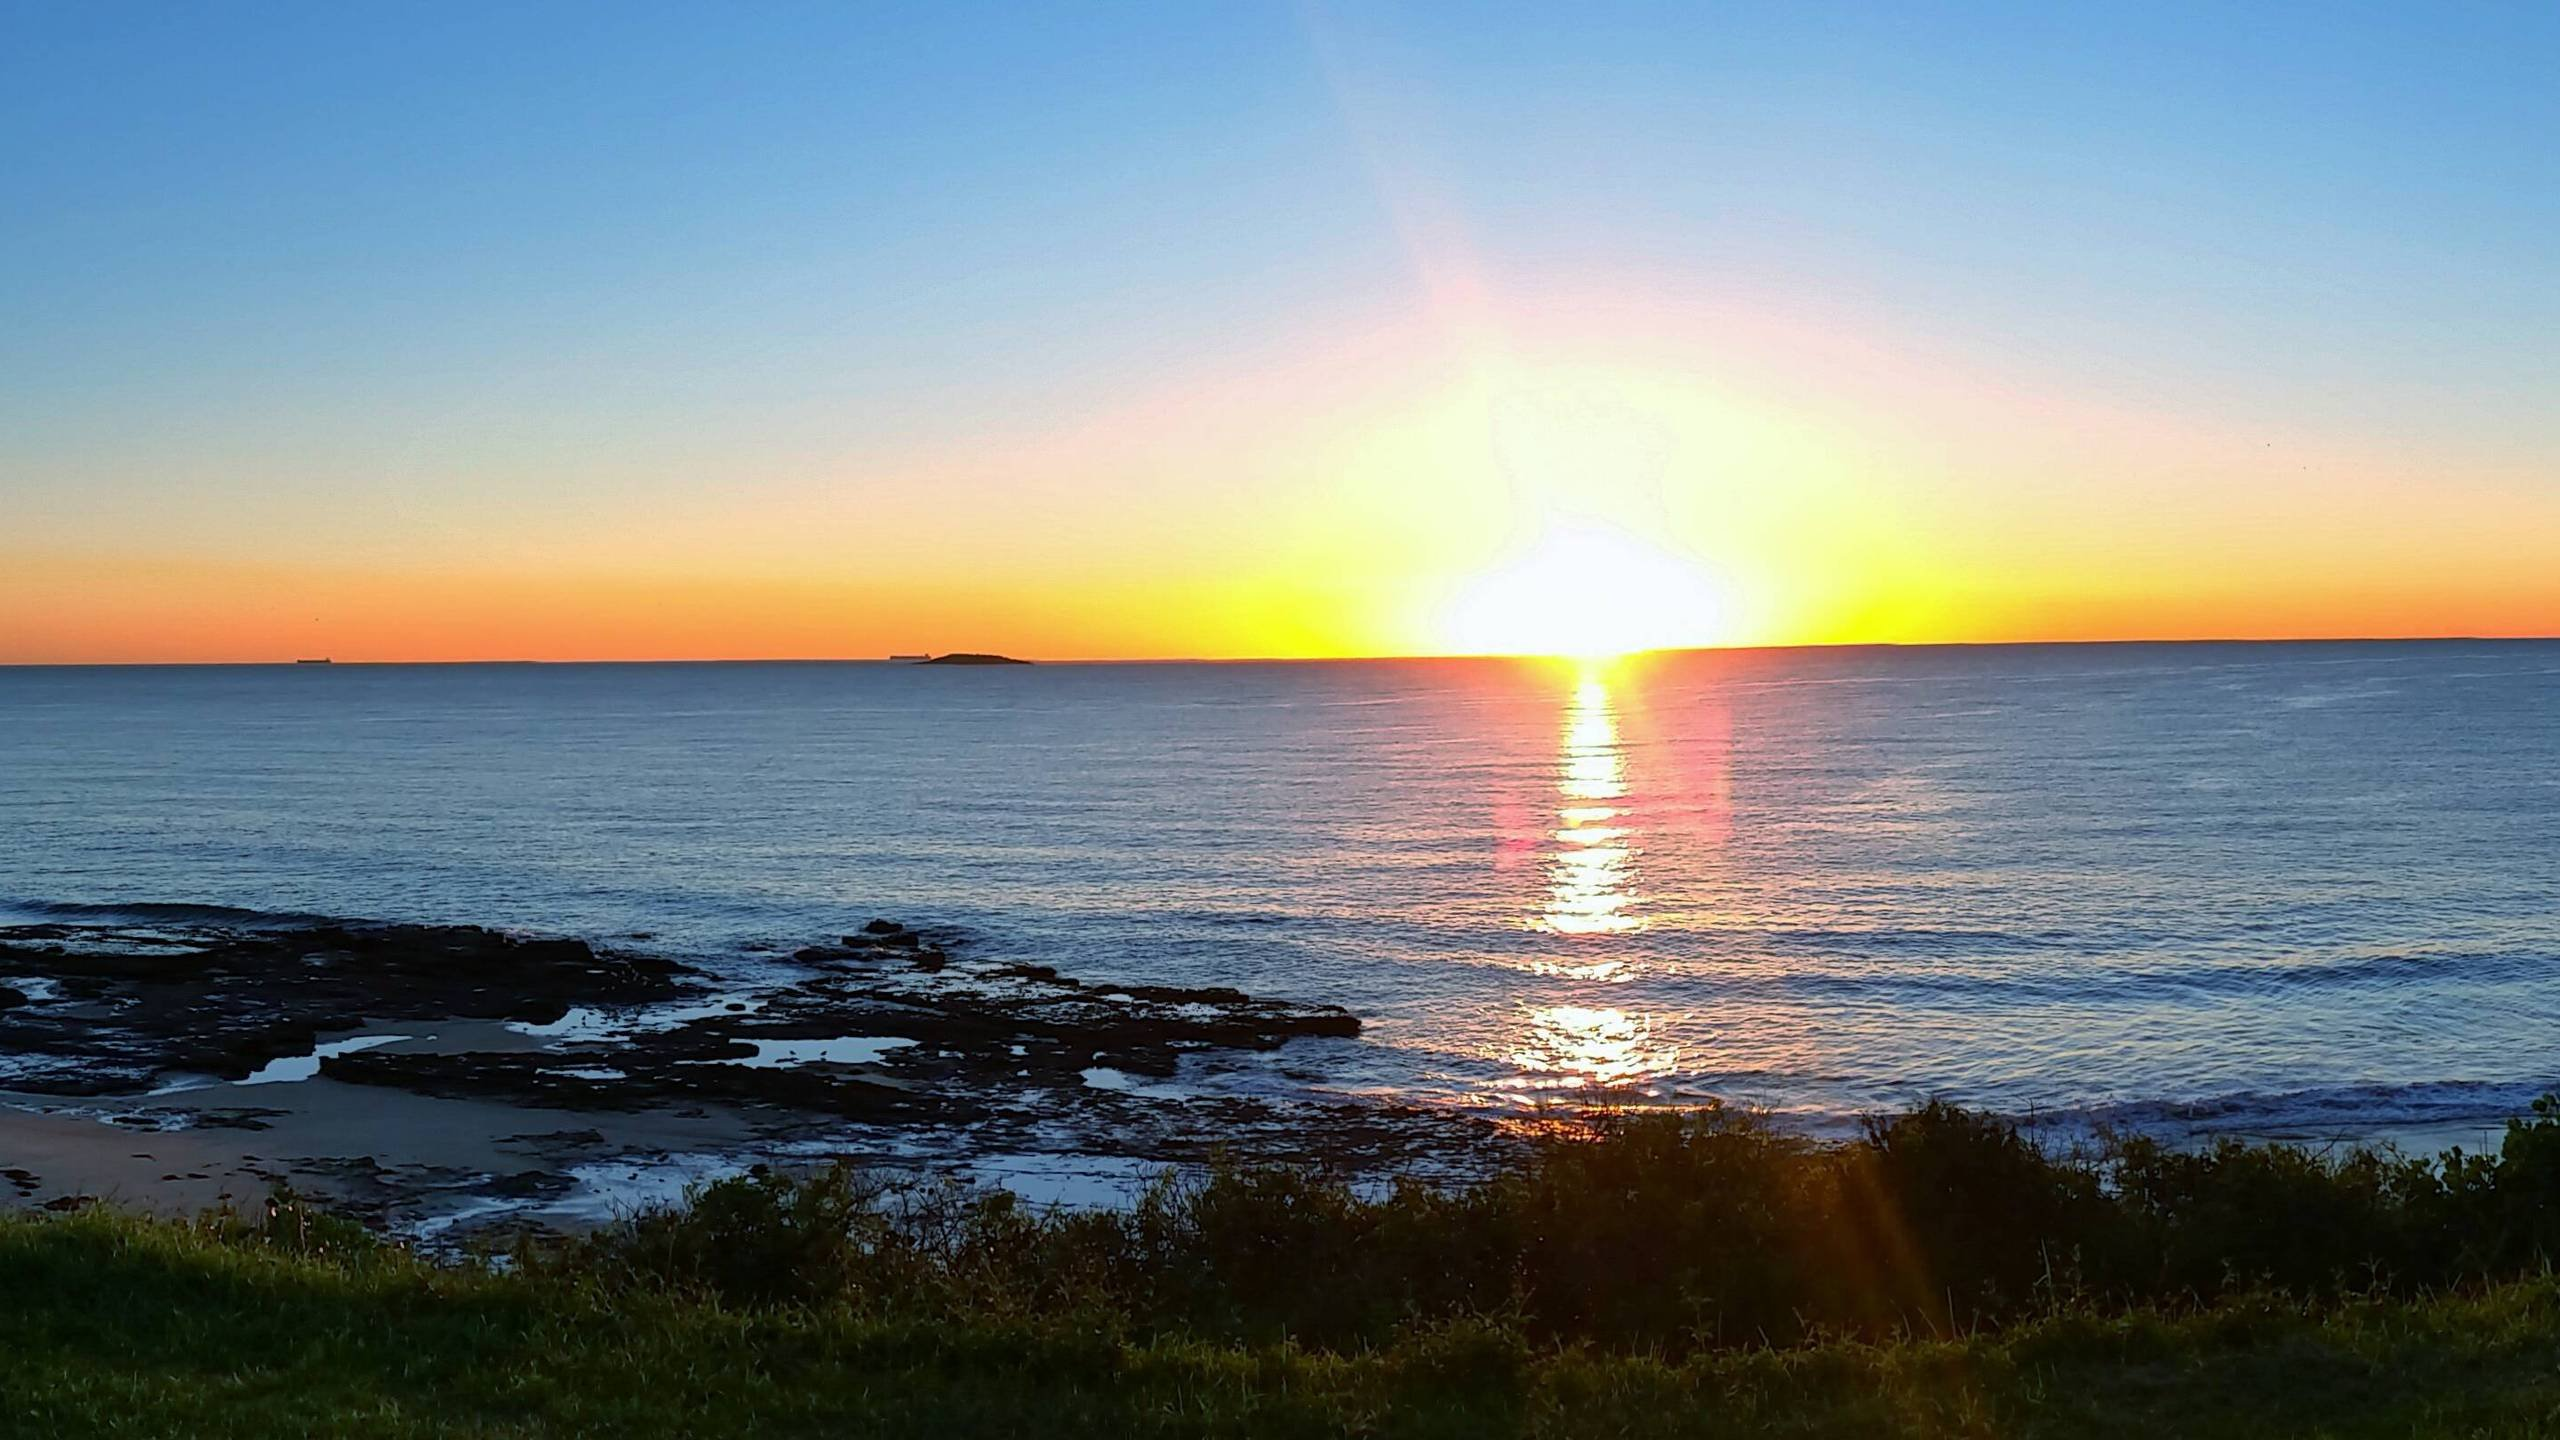 Sunrise Port Kembla Australia wallpaper